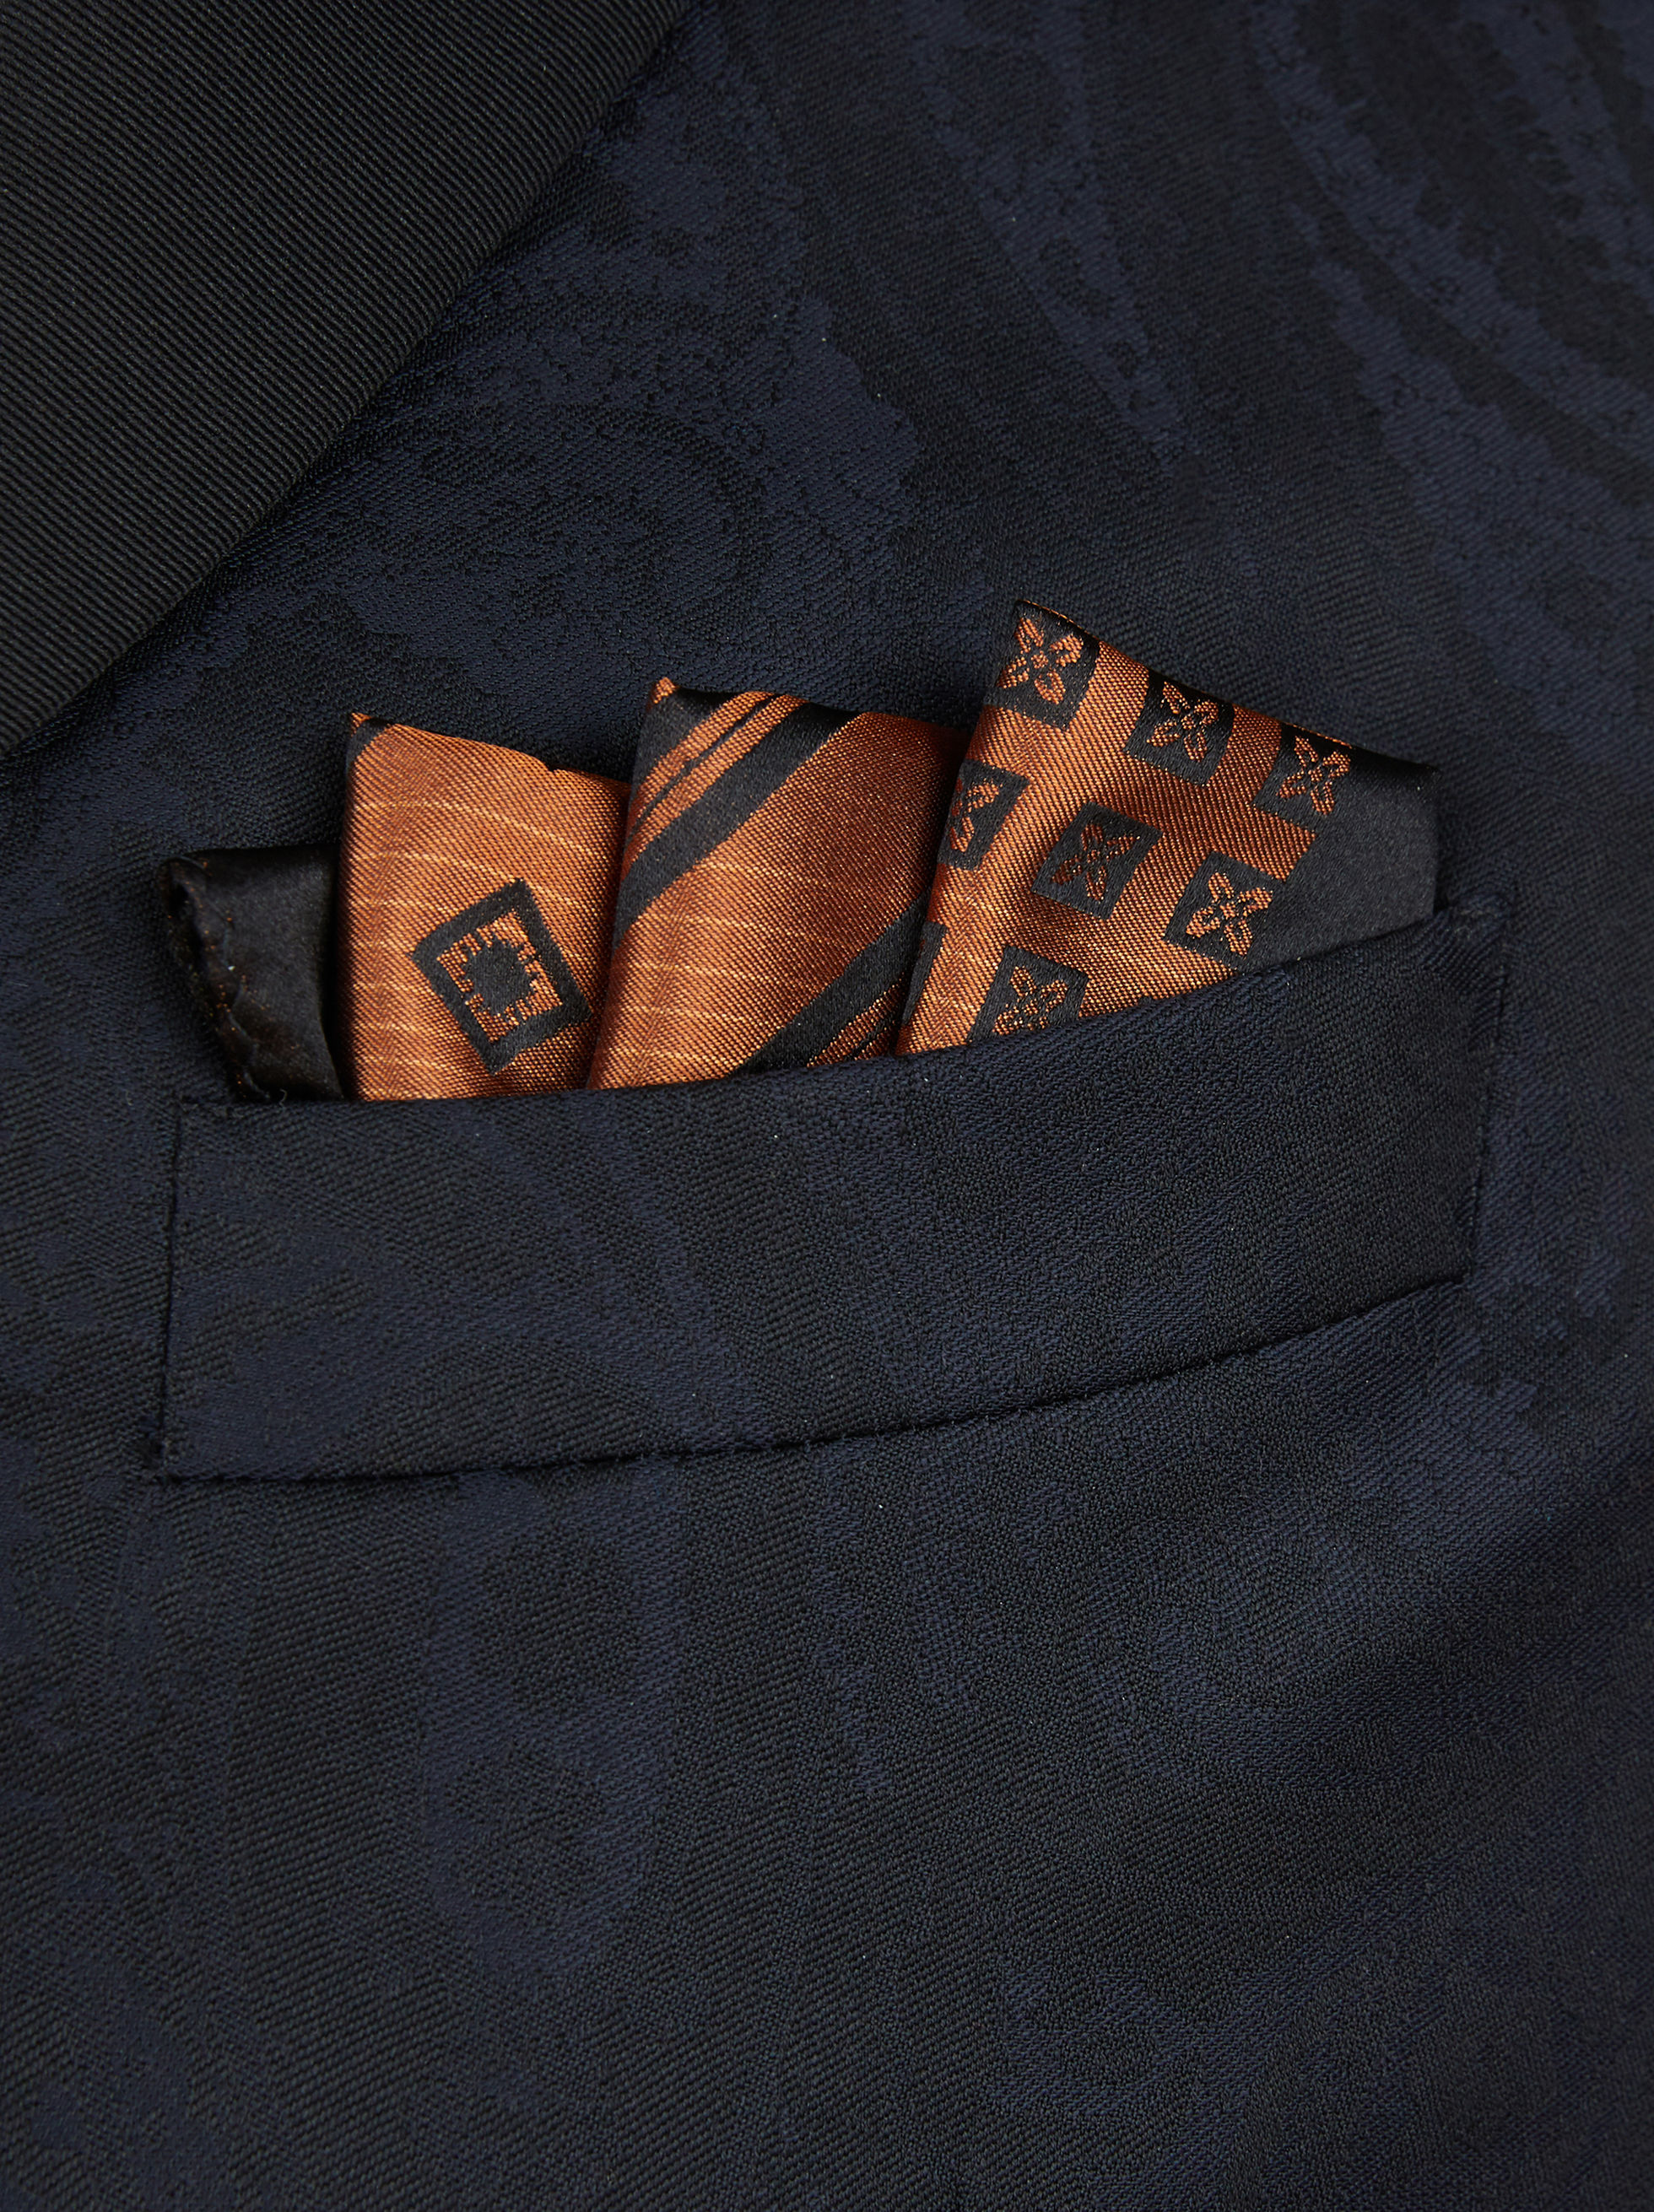 PATCHWORK POCKET HANDKERCHIEF